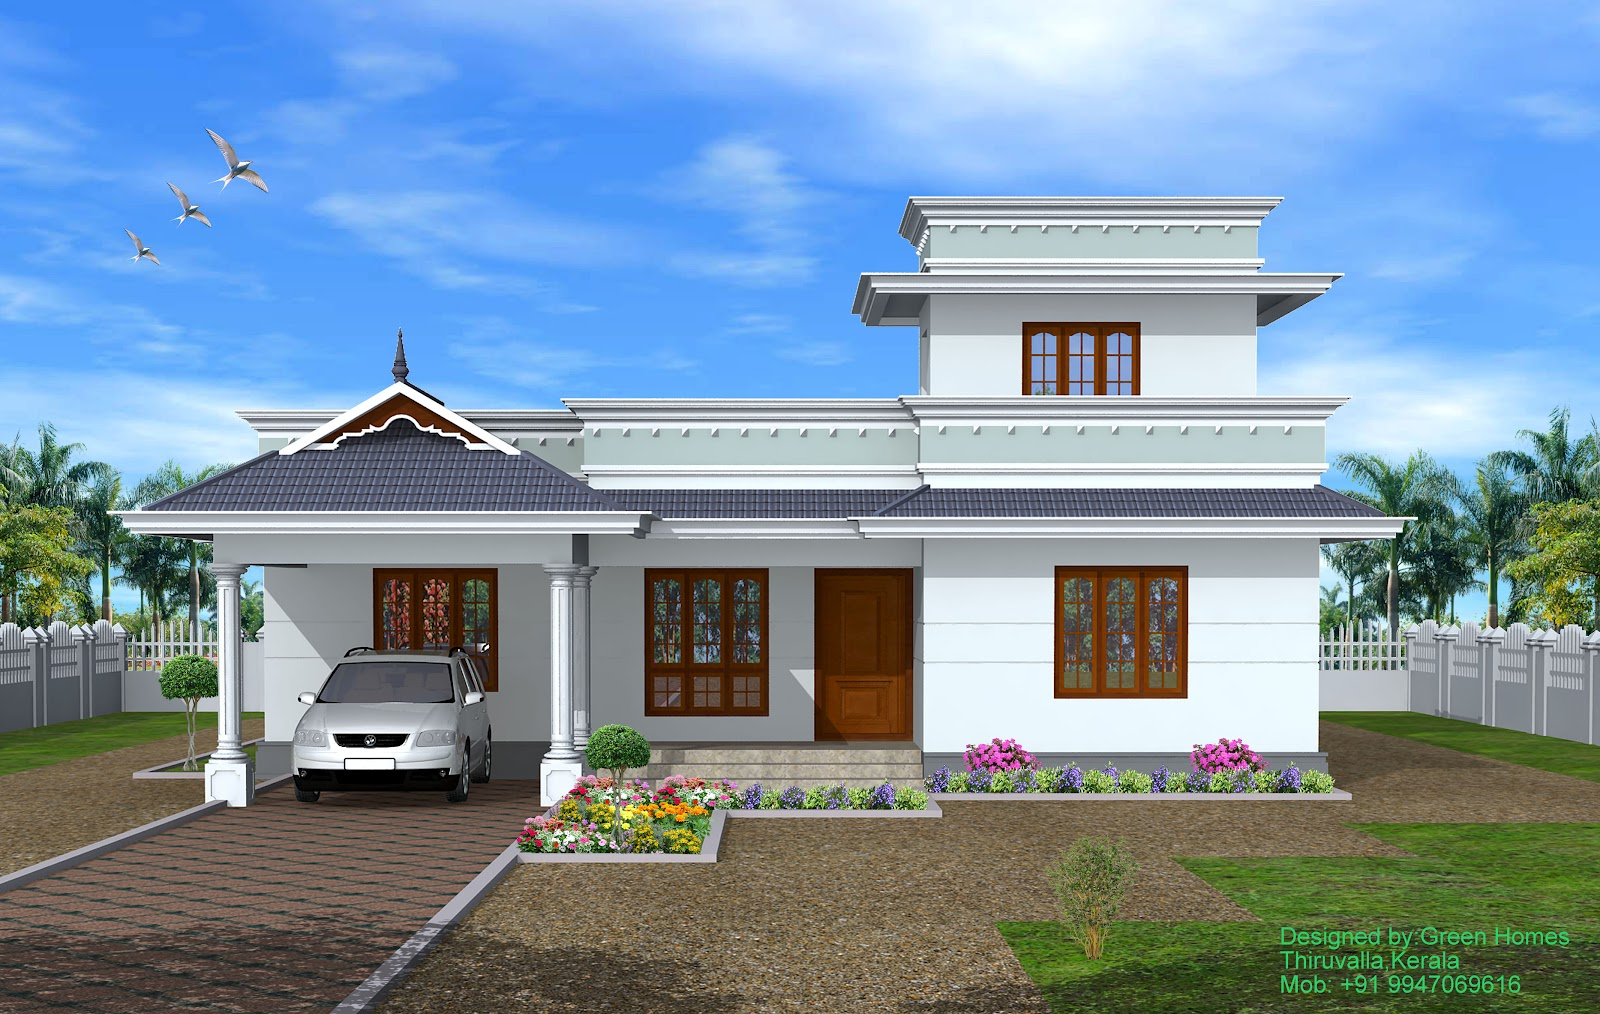 Green homes kerala 4 bhk single storey house 1950 for Single floor home design